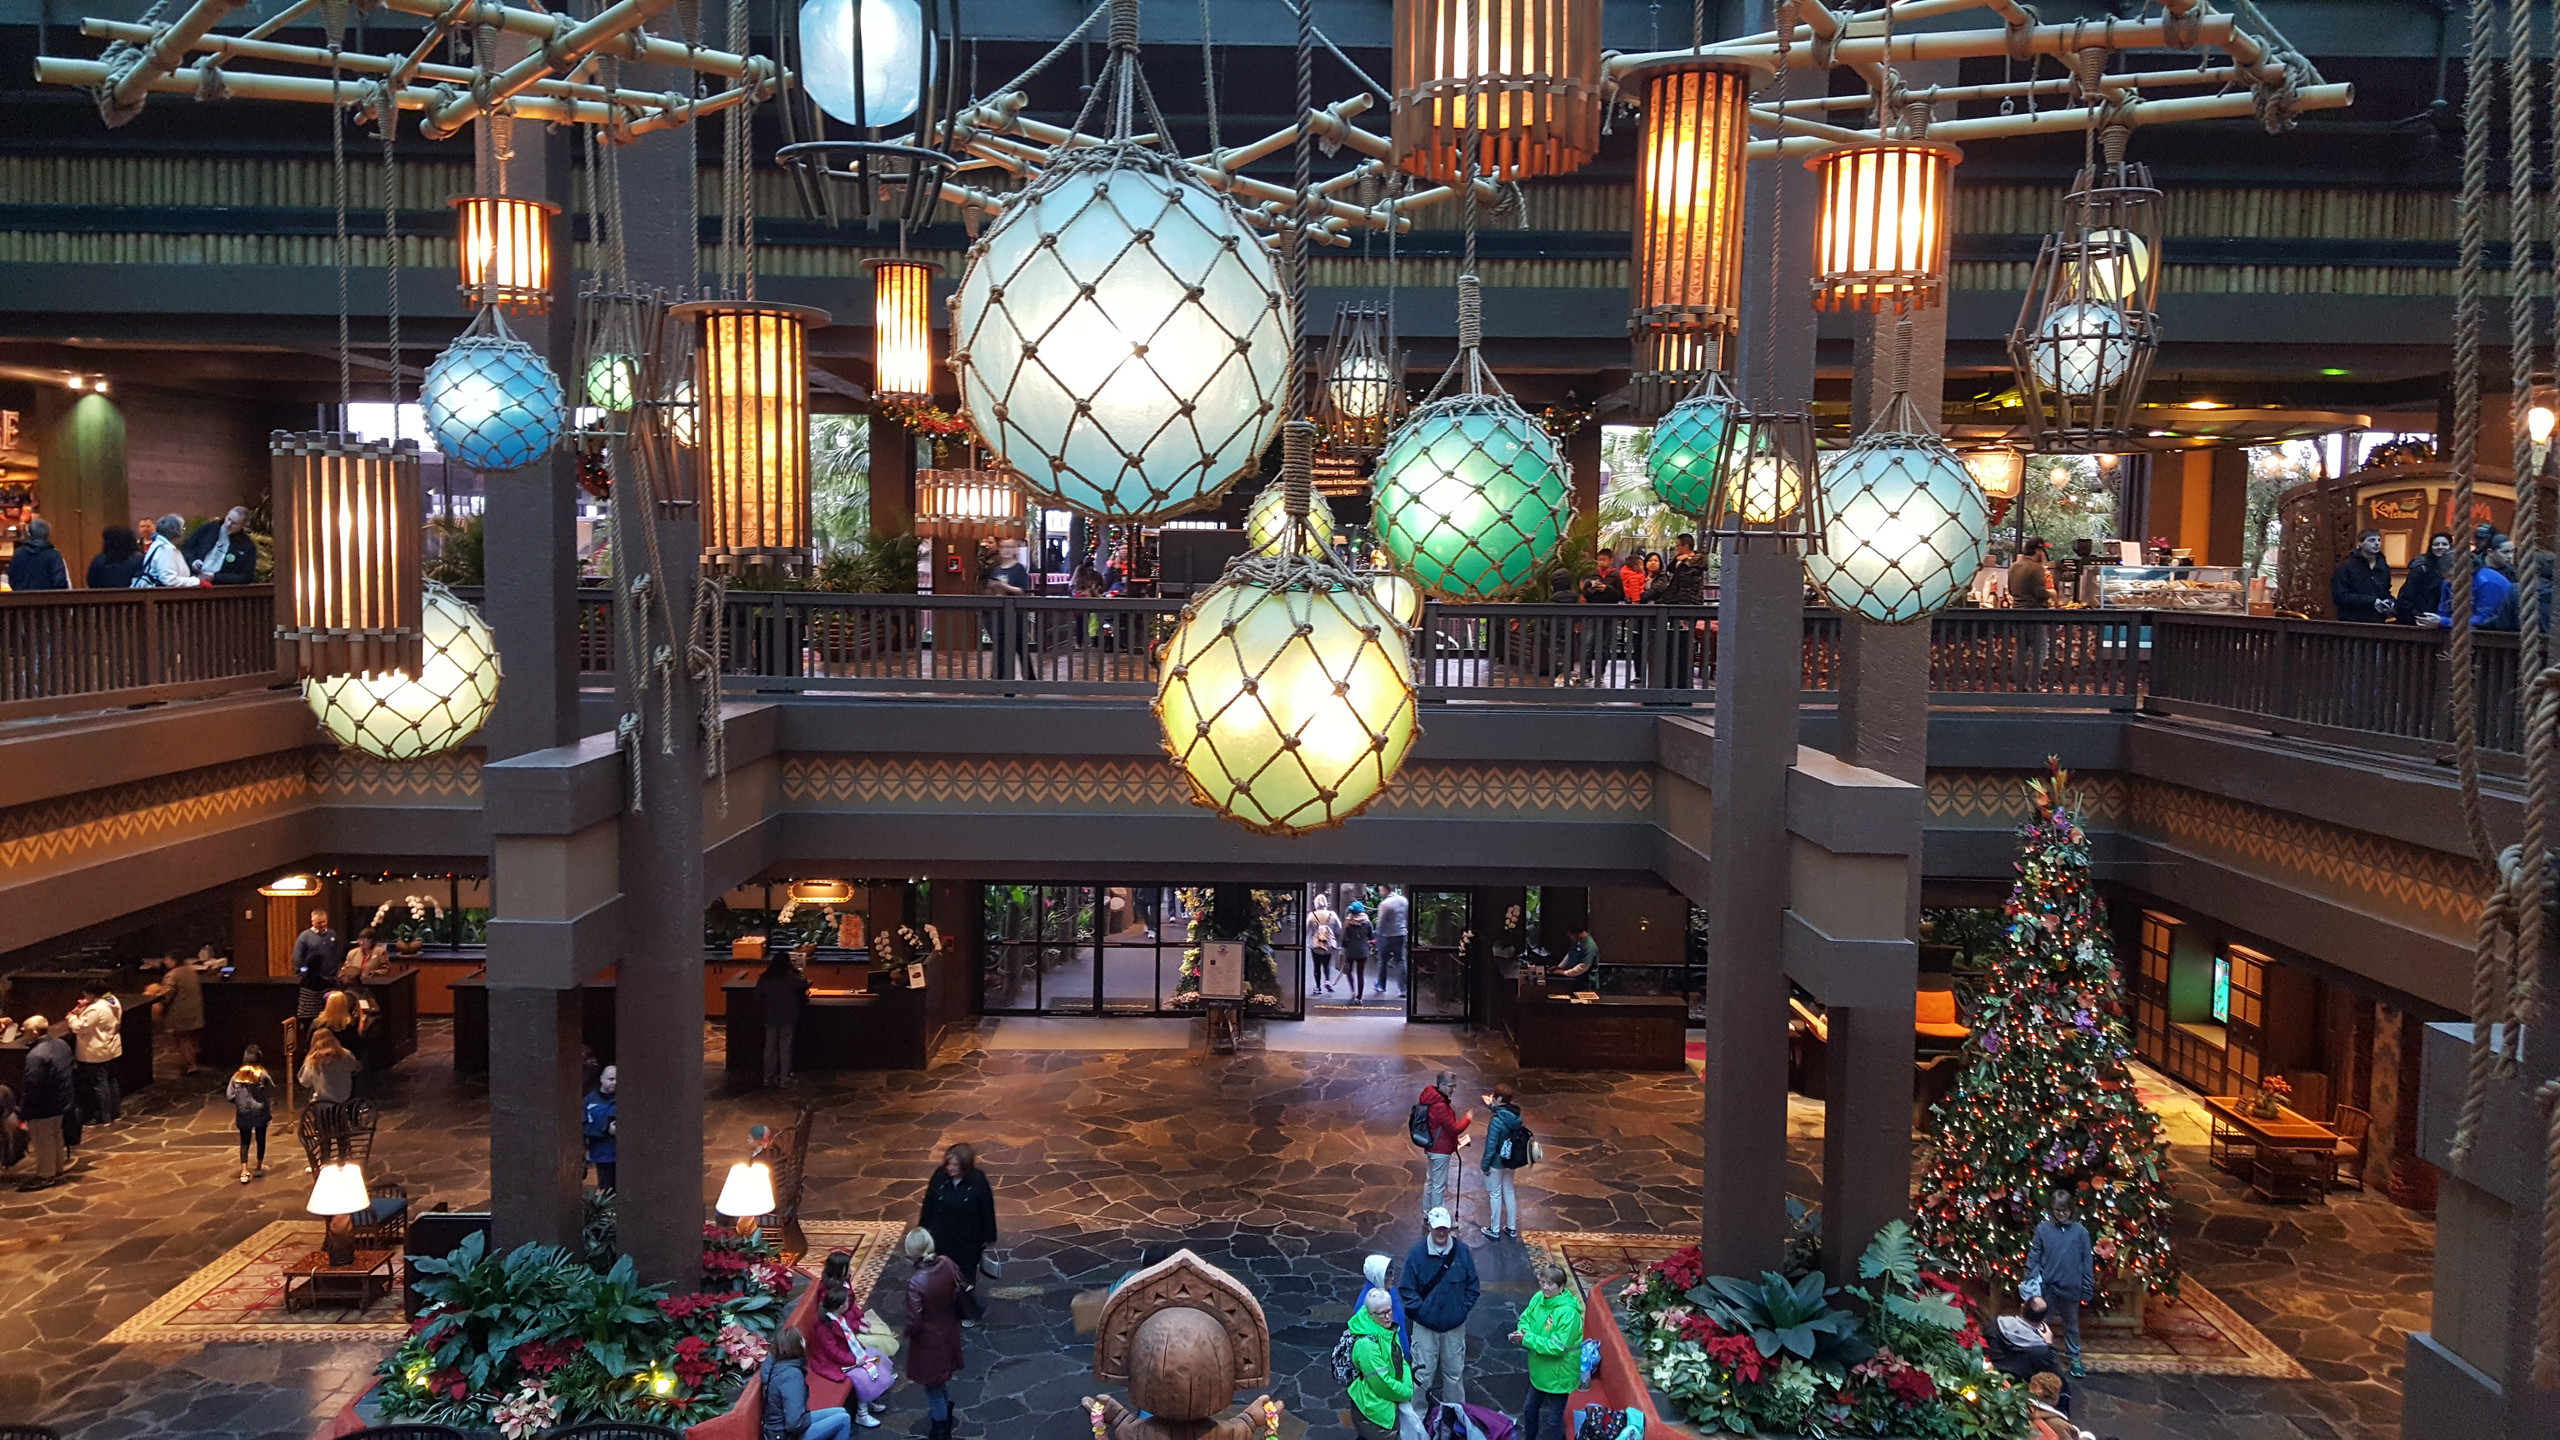 Inside the Polynesian Hotel